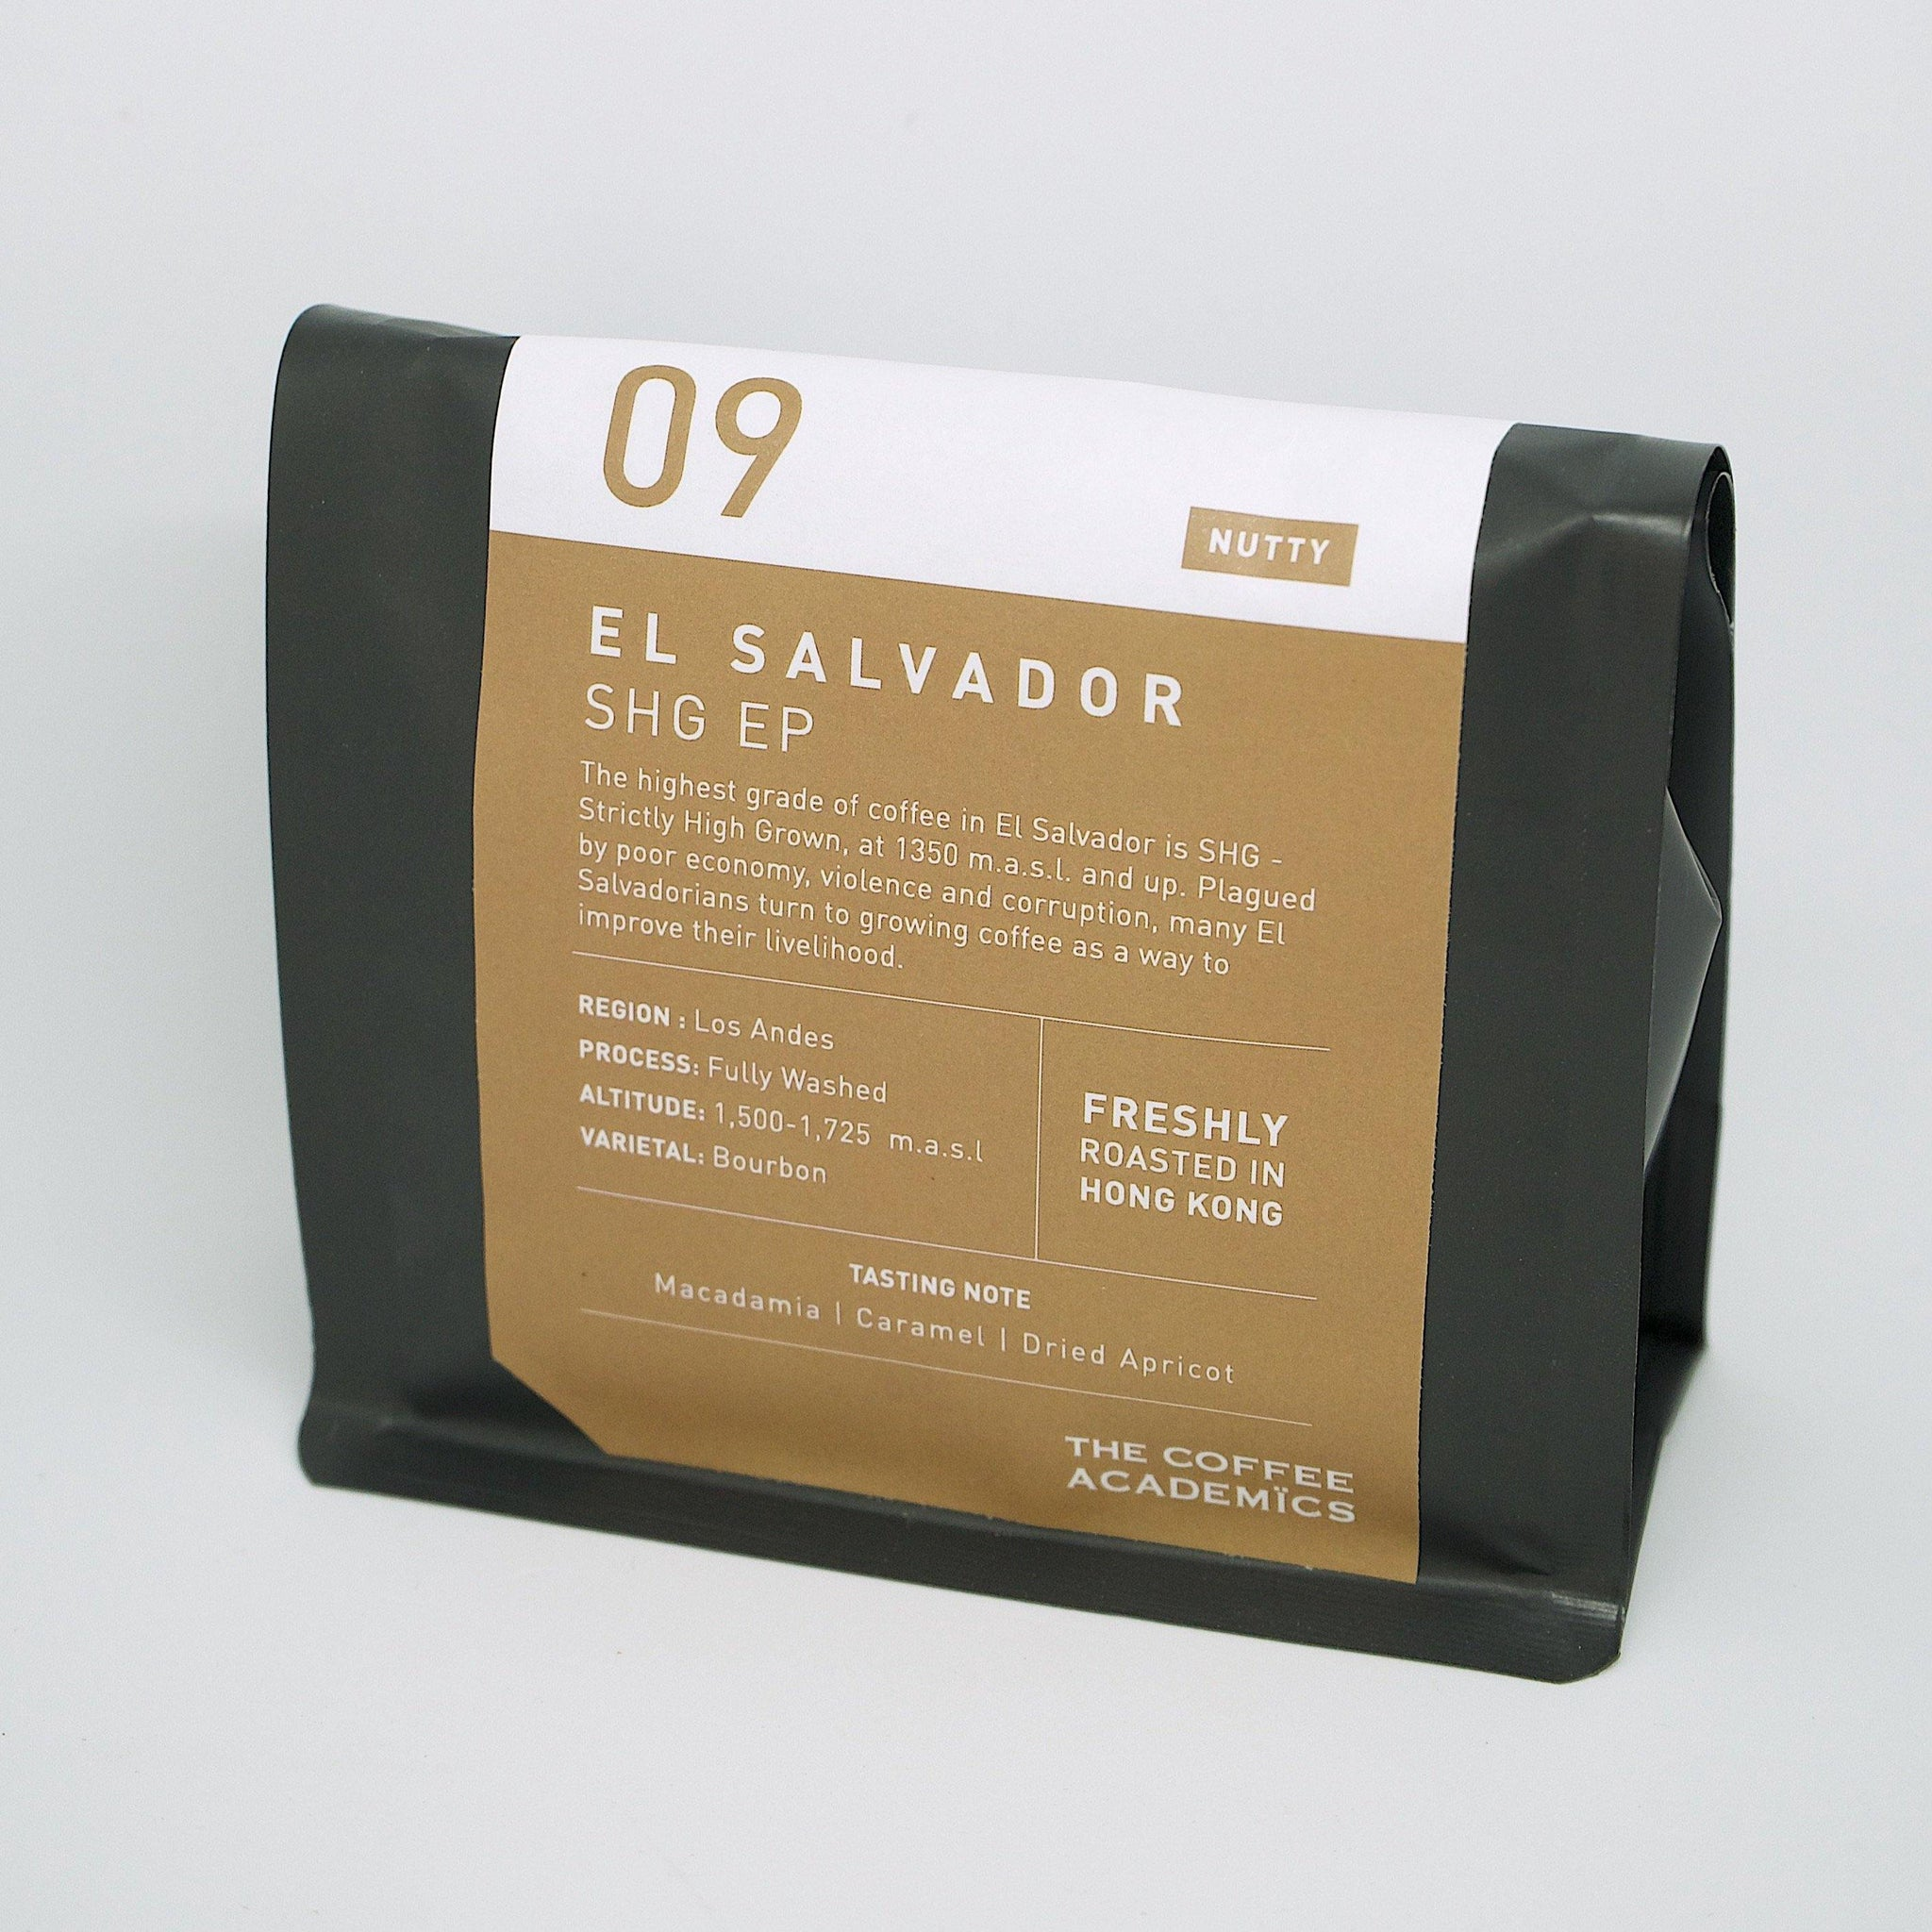 09 El Salvador SHG EP Roasted Bean 200g